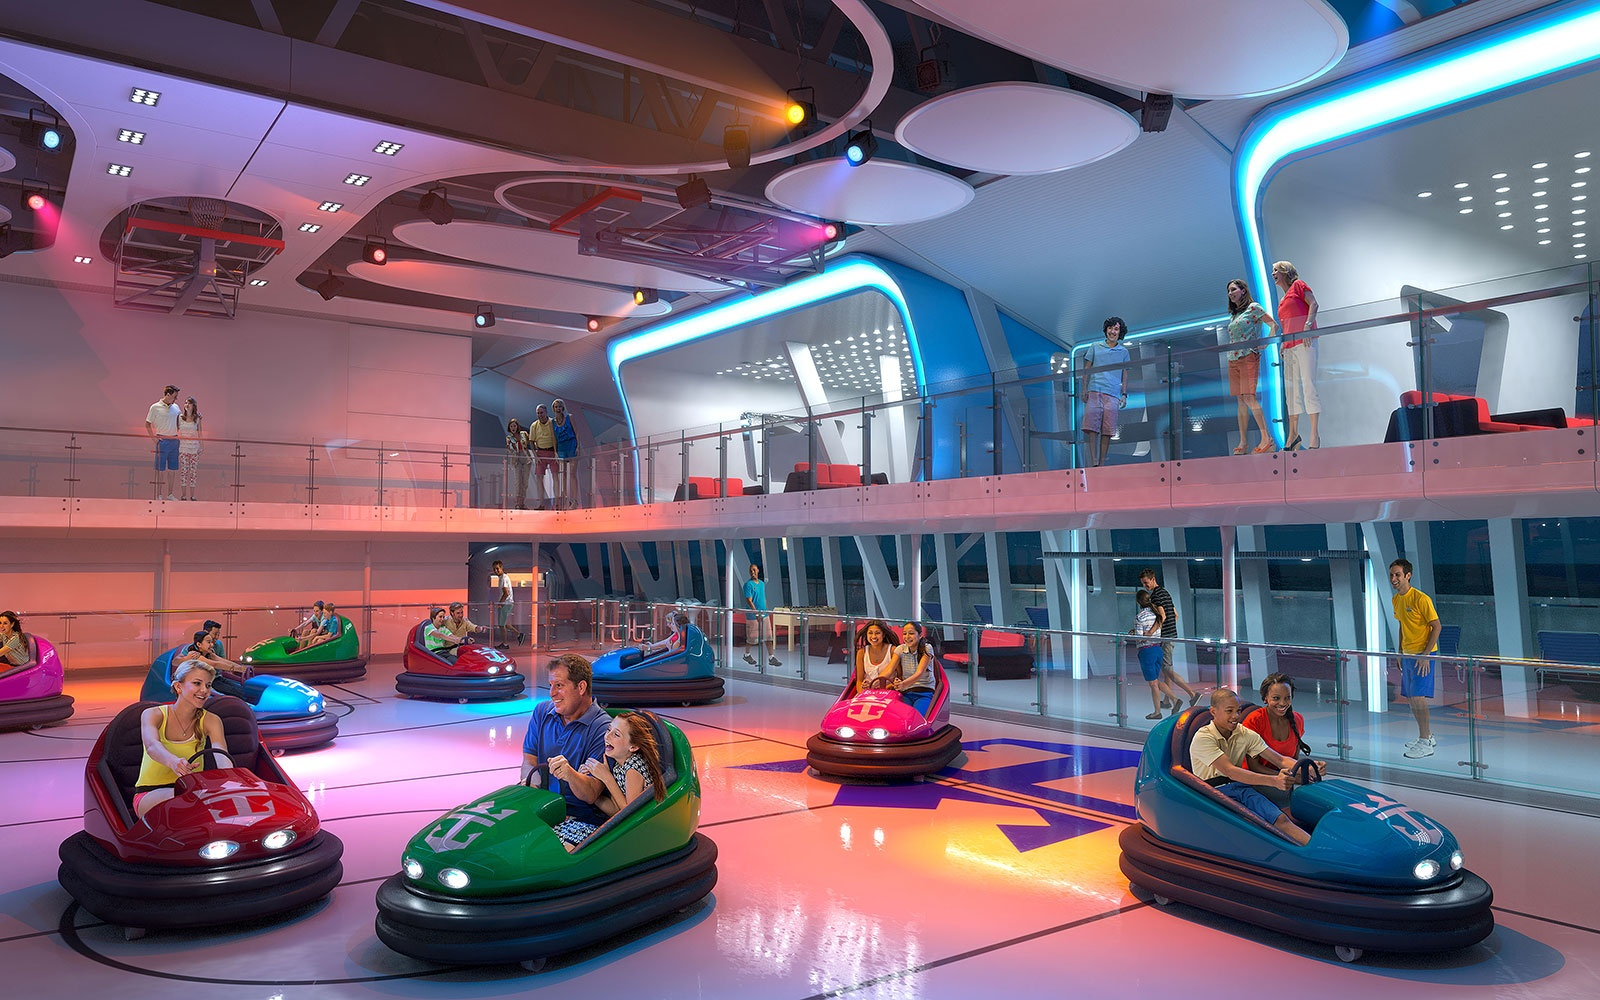 Bumper Cars on Royal Caribbean's Quantum of the Seas and Anthem of the Seas